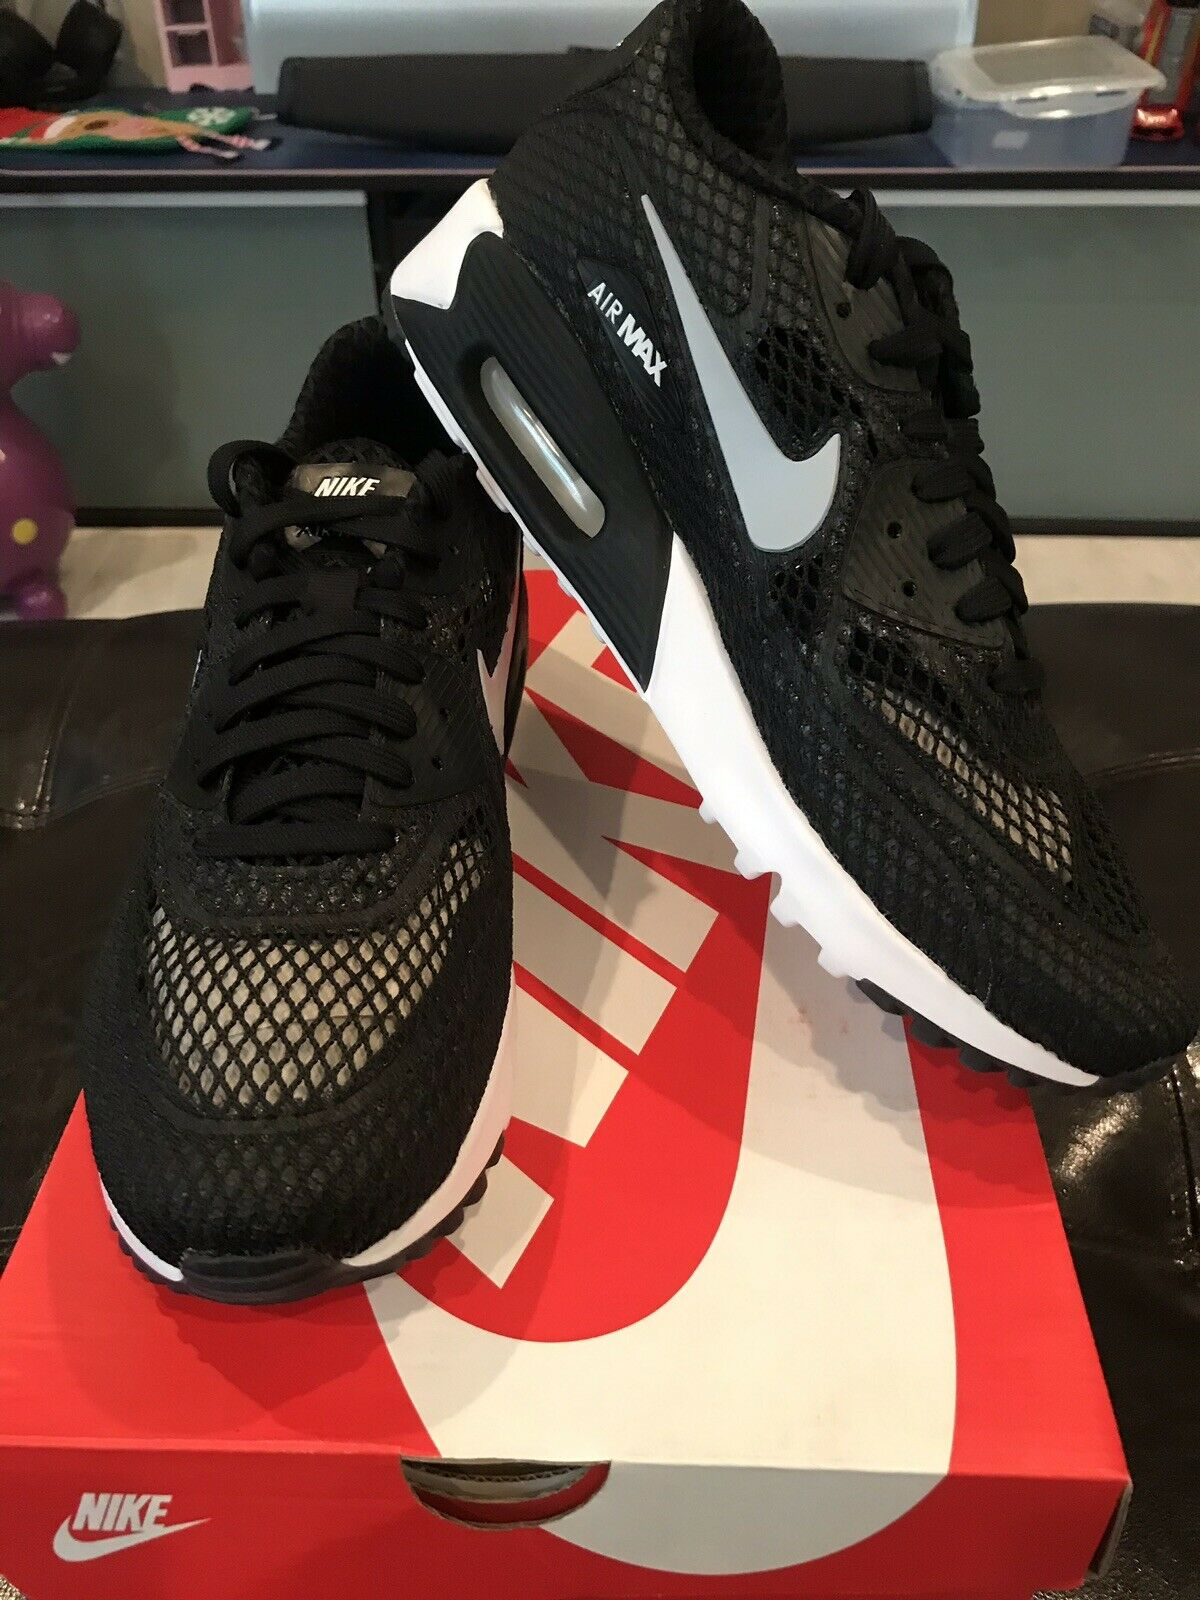 ea4cd4381addb1 Nike AirMax 90 Ultra BR Plus QS Size Size Size 10 8a1bd2 - slippers ...